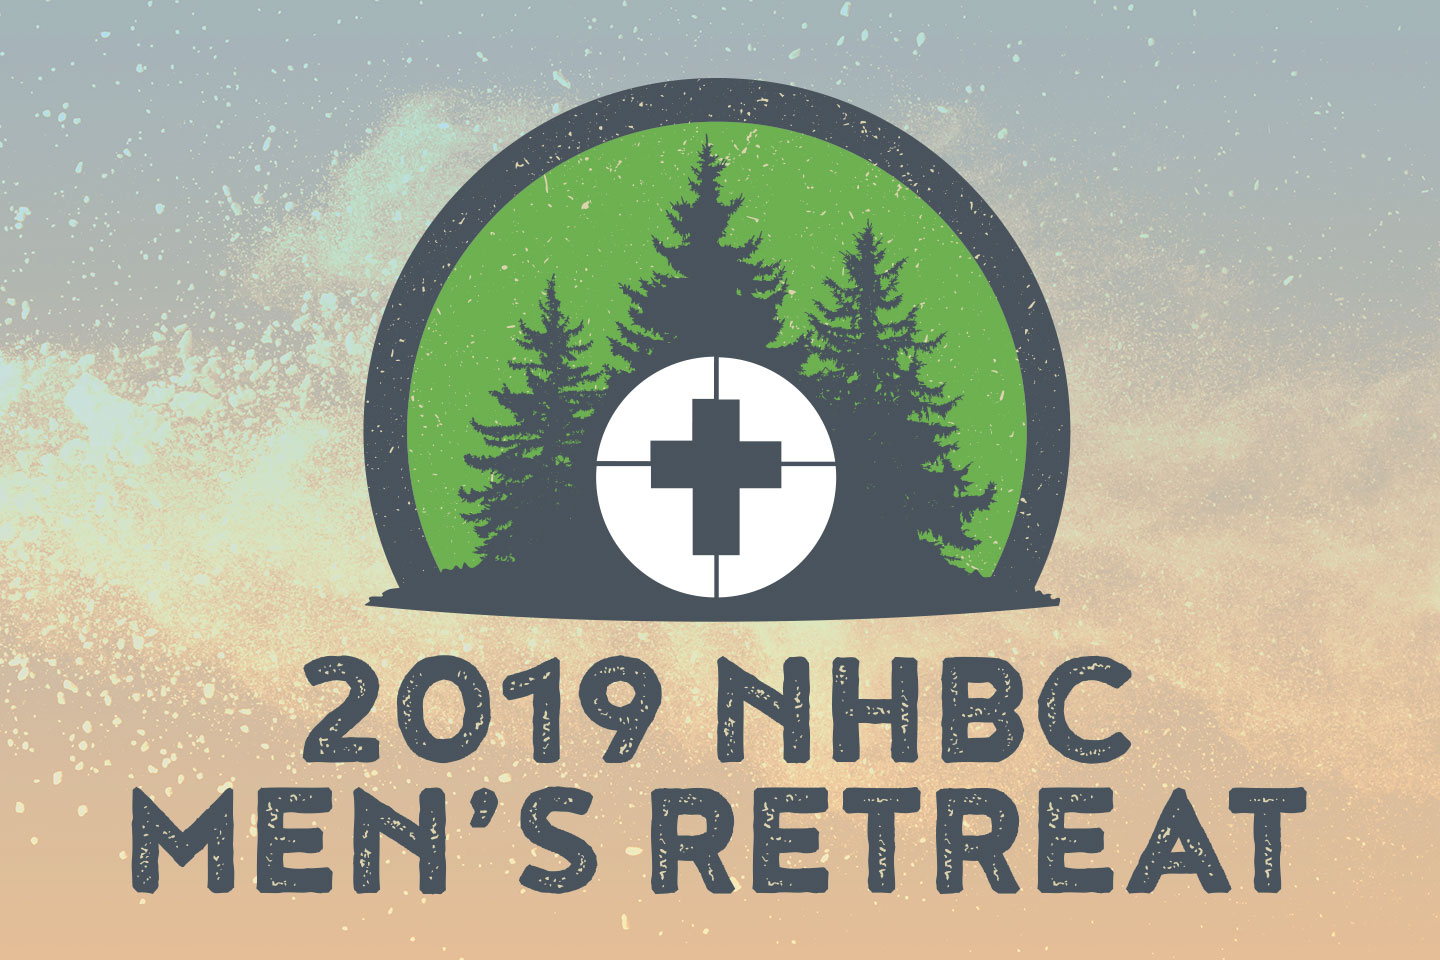 2019 Men's Retreat